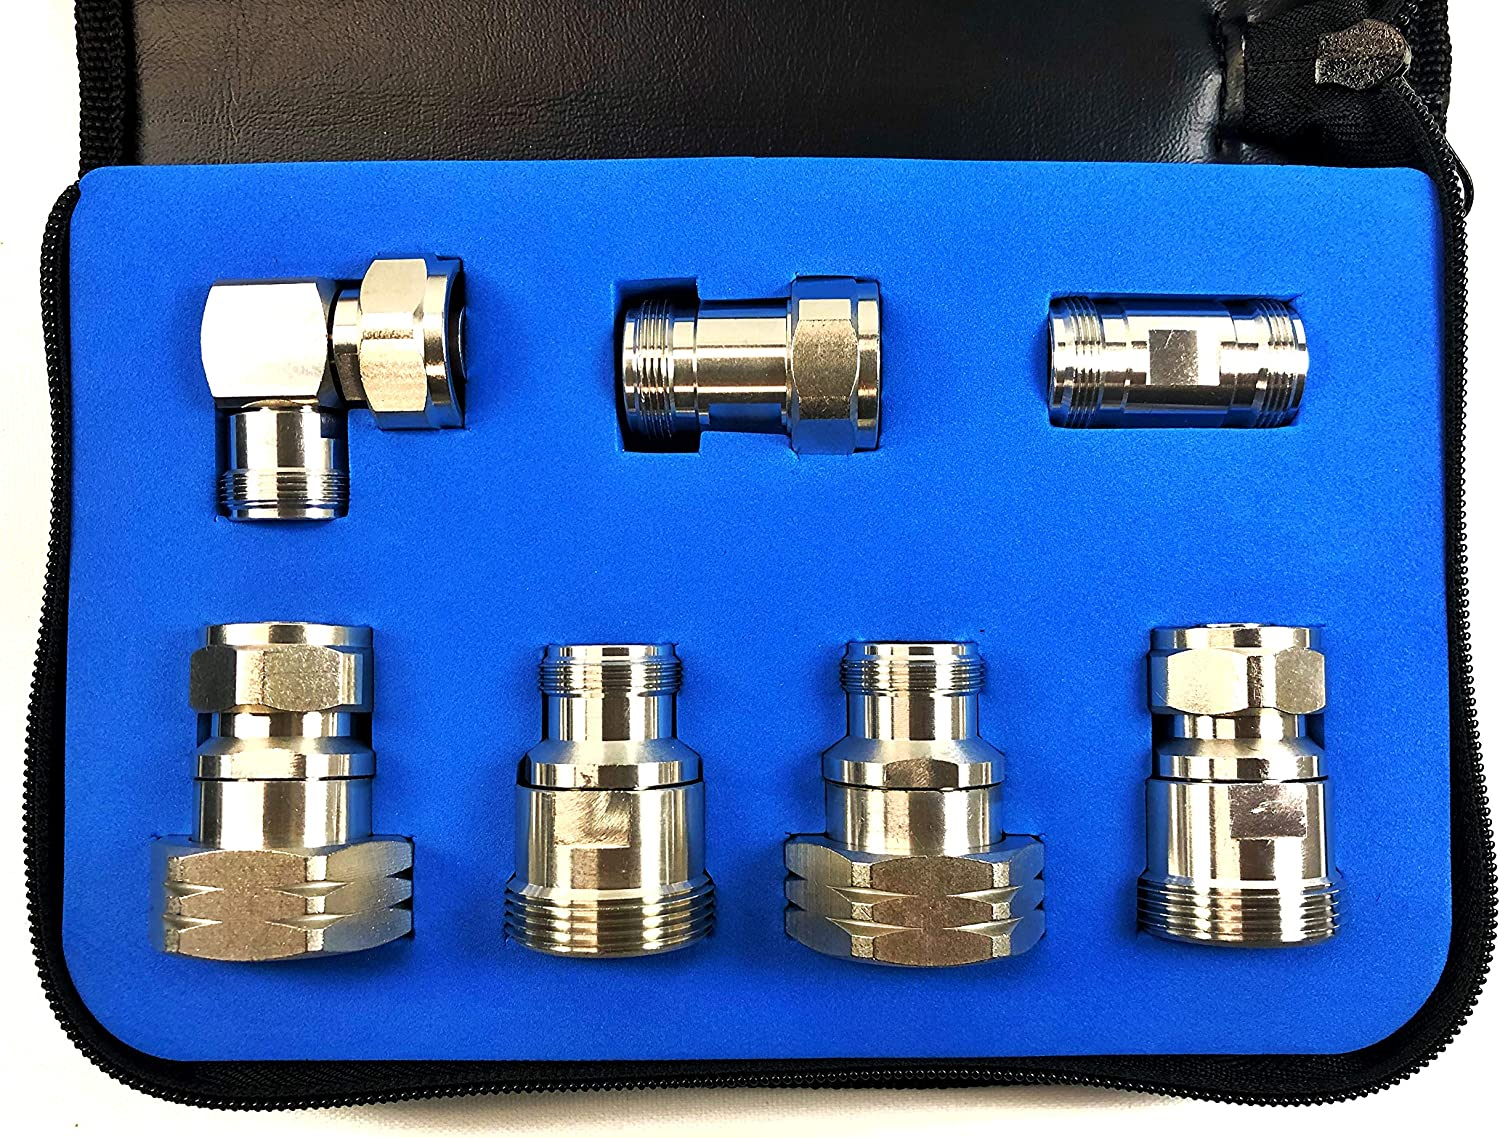 ConnectoRF RF Low PIM Adapter Kit Mini-DIN 4.1//9.5 to N Tri-Metal Plating 7pcs with Case